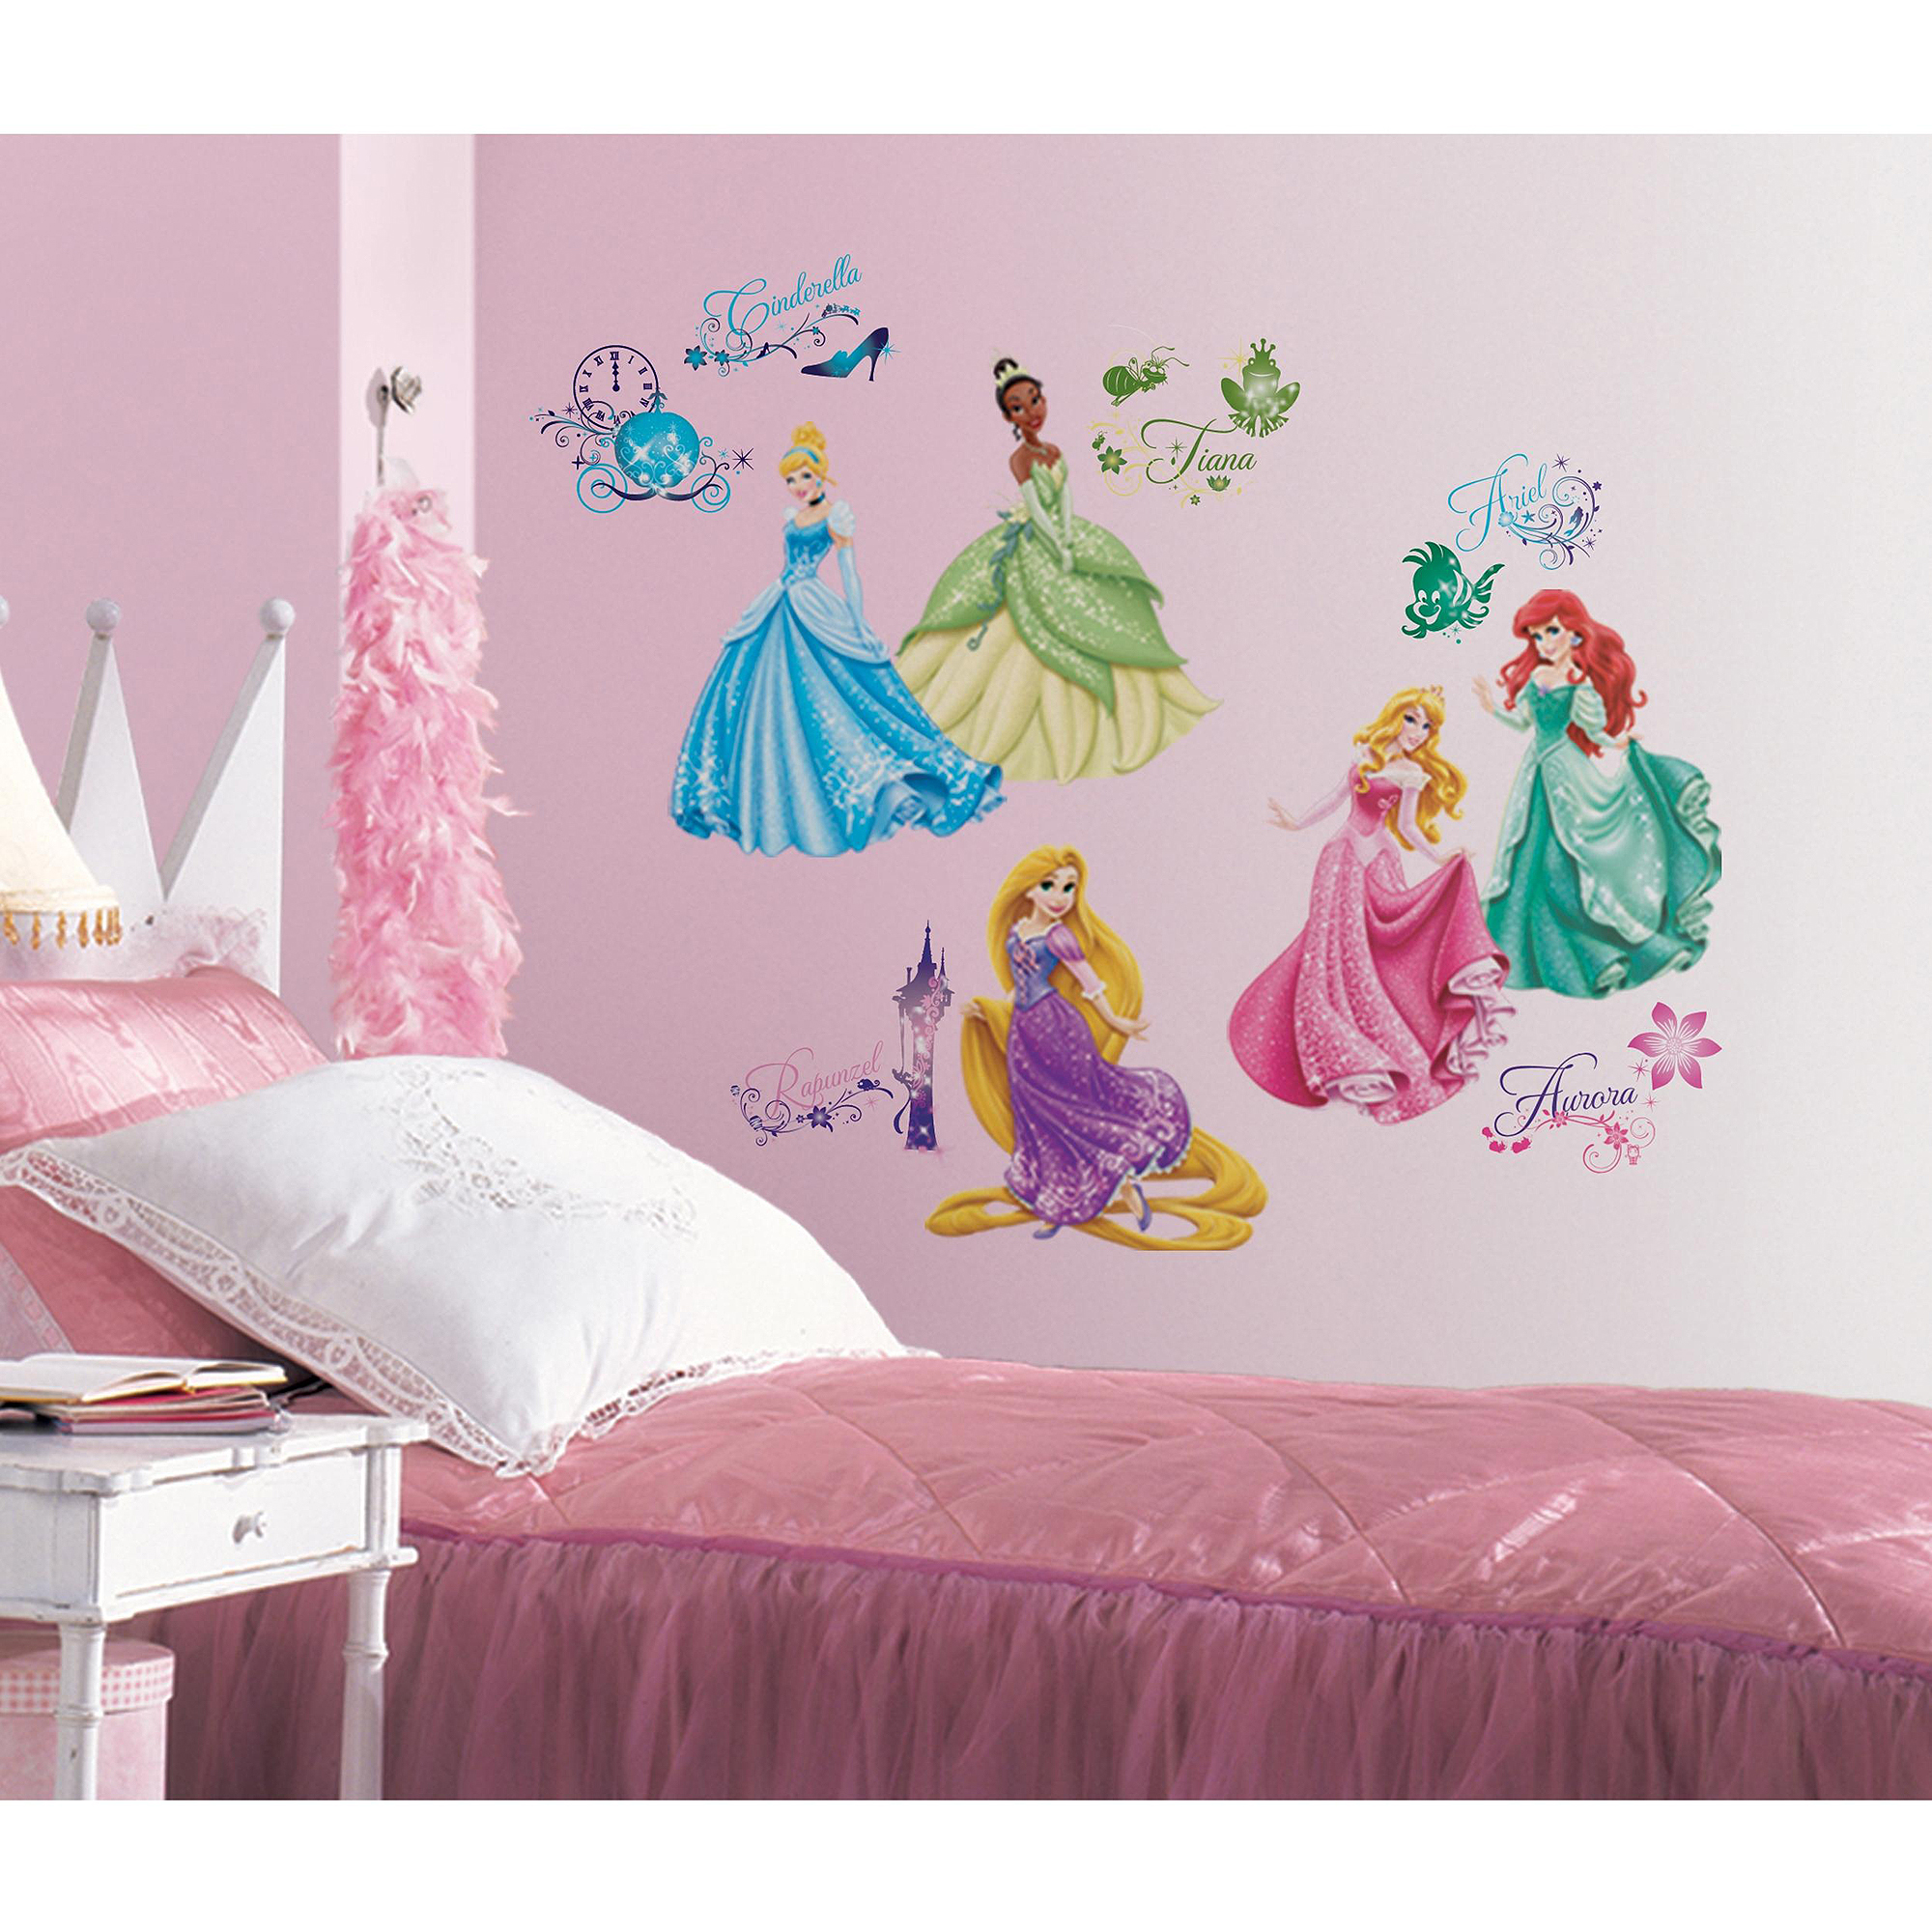 Merveilleux Disney Princess Royal Debut Peel And Stick Wall Decals